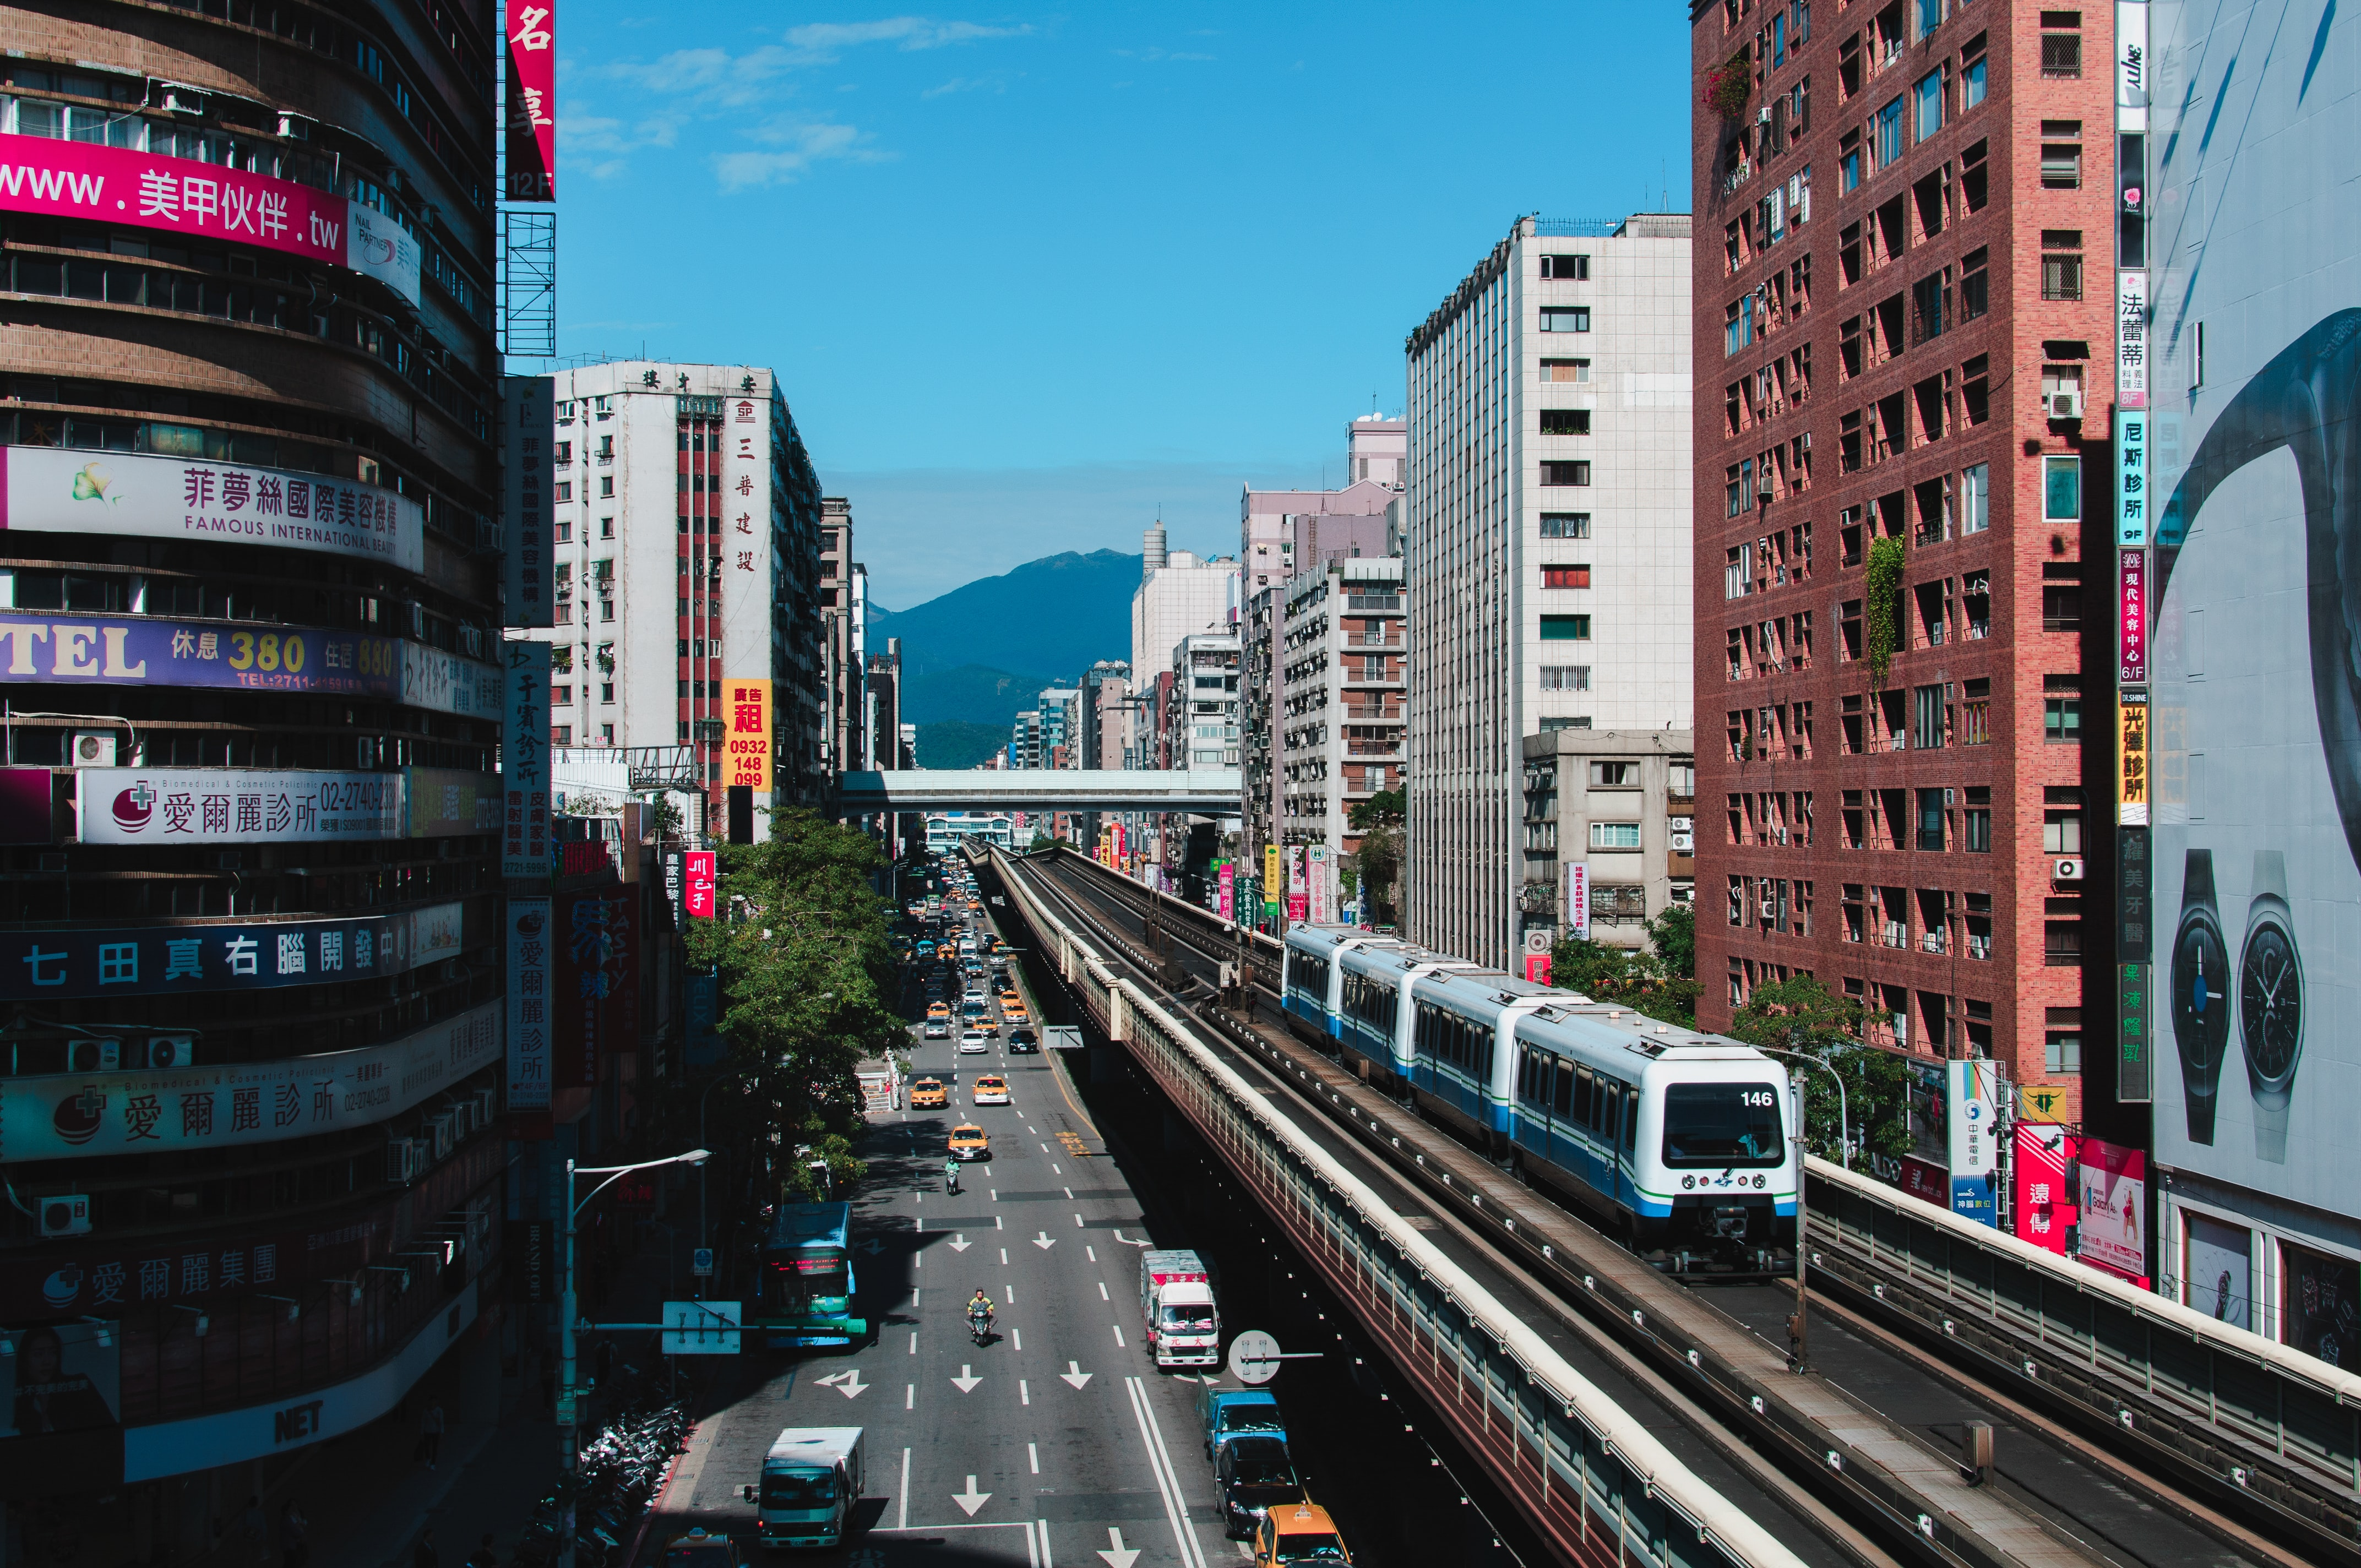 white and blue train near high-rise buildings during daytime